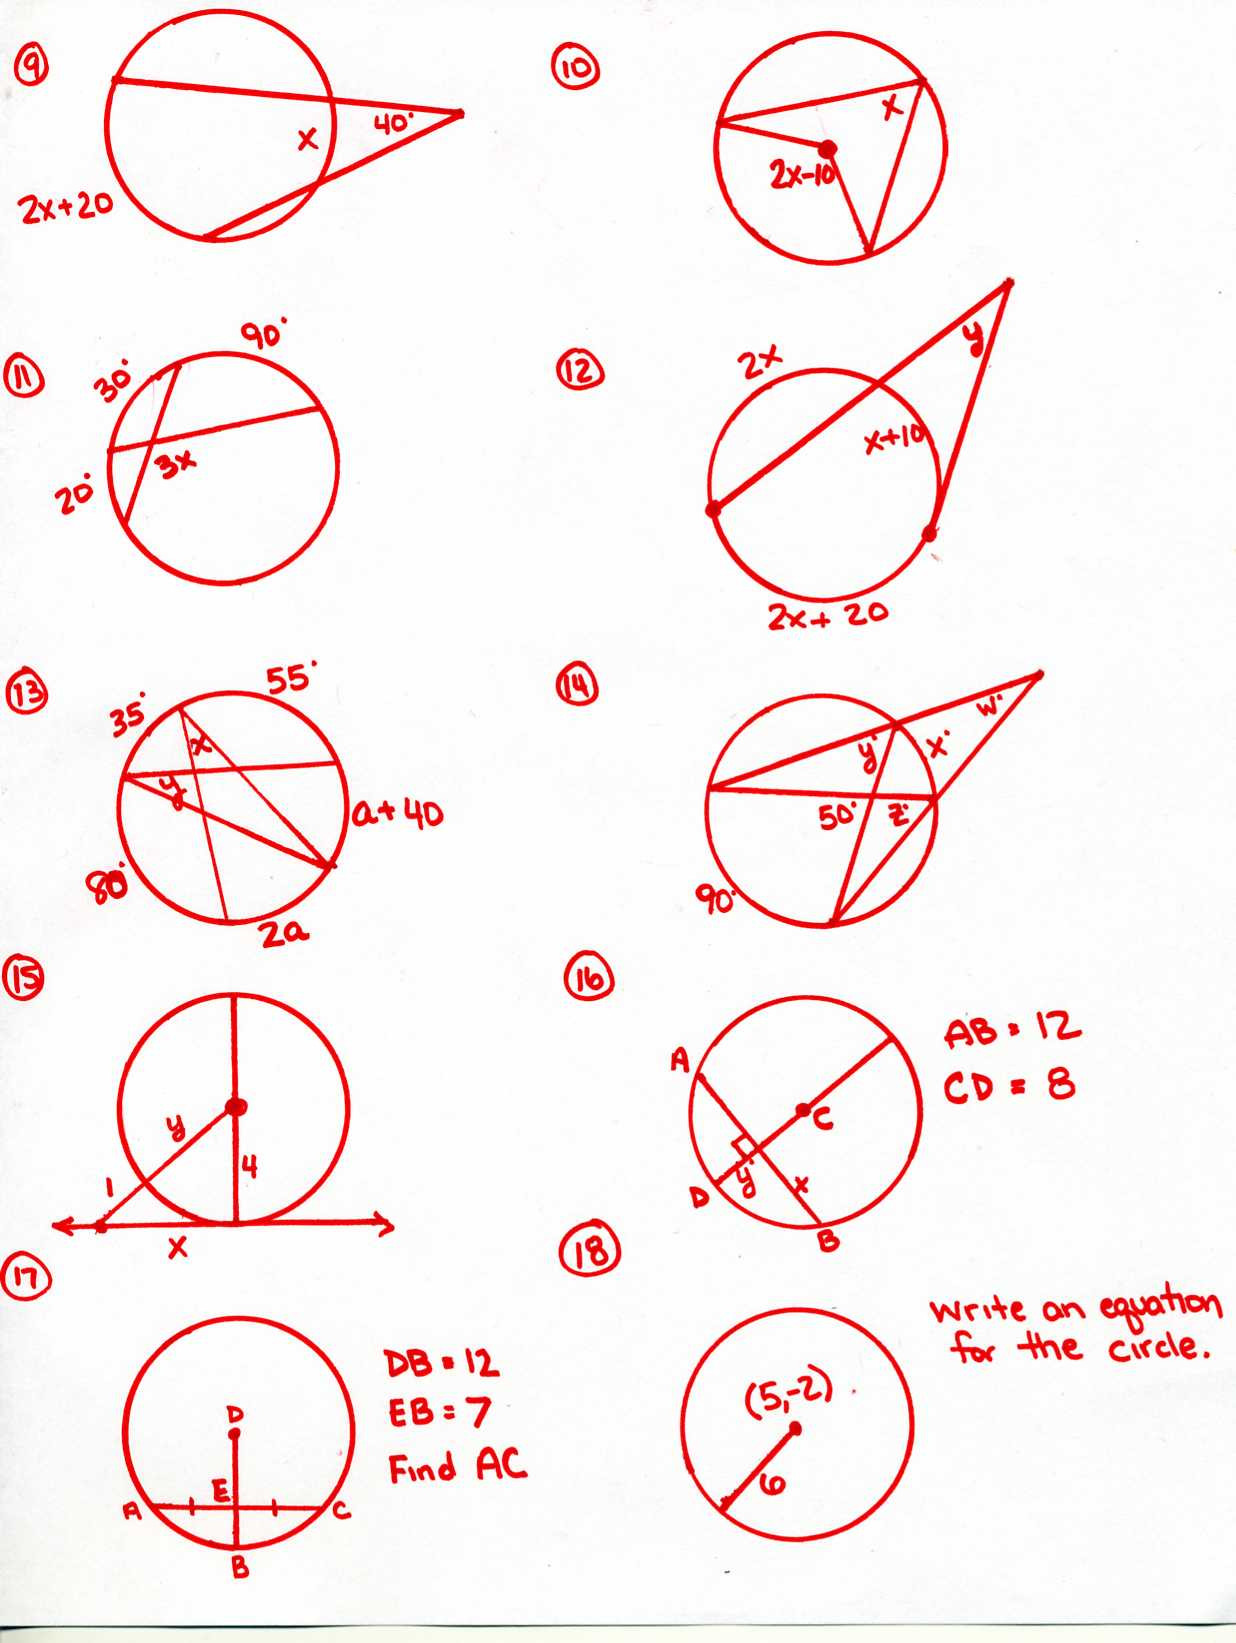 9th Grade Geometry Worksheets Circle theorems Homework Geometry Worksheets Grade Ch